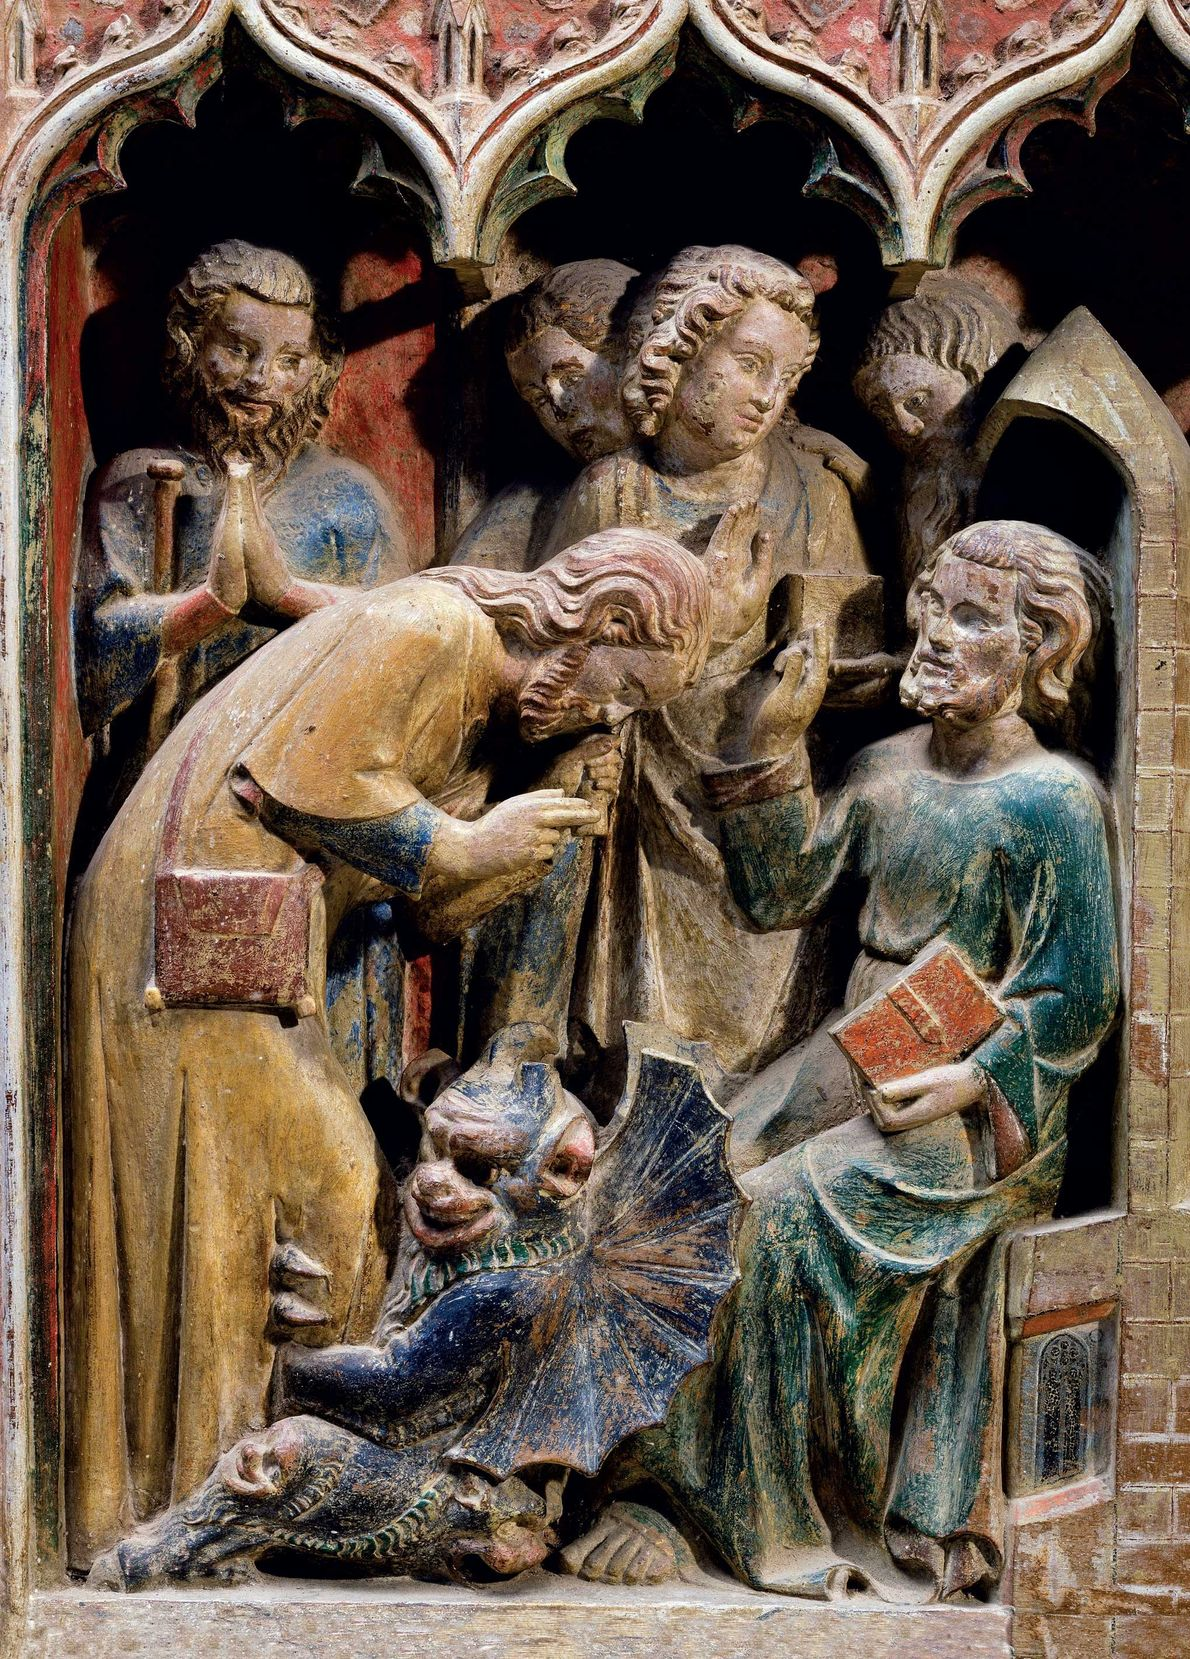 St. Theobald exorcises a possessed man in this 14th-century altarpiece of the Church of St. Thibault ...